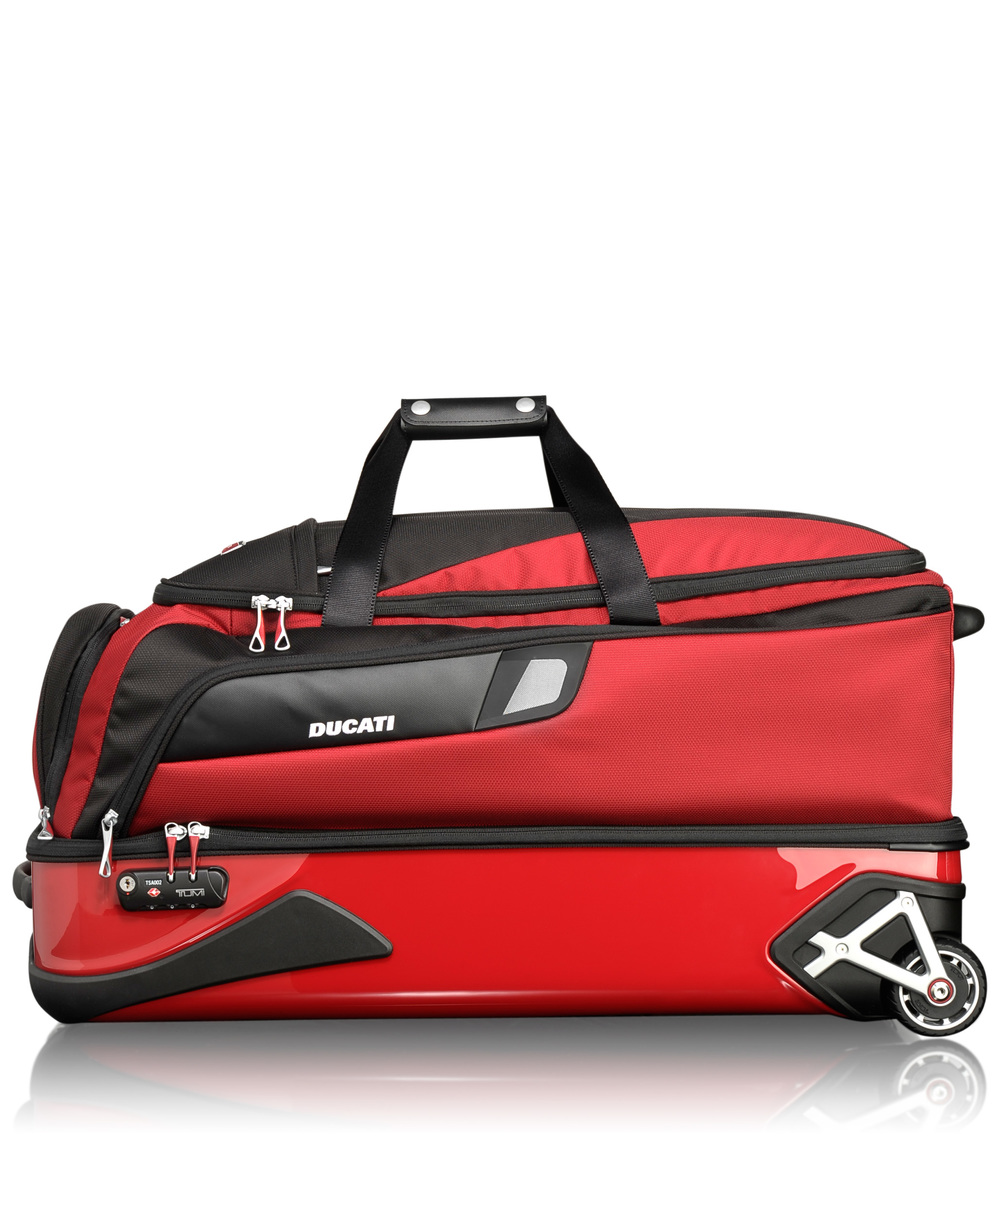 65140 Race Ducati Due Porte Collapsible Wheeled Duffel .jpeg